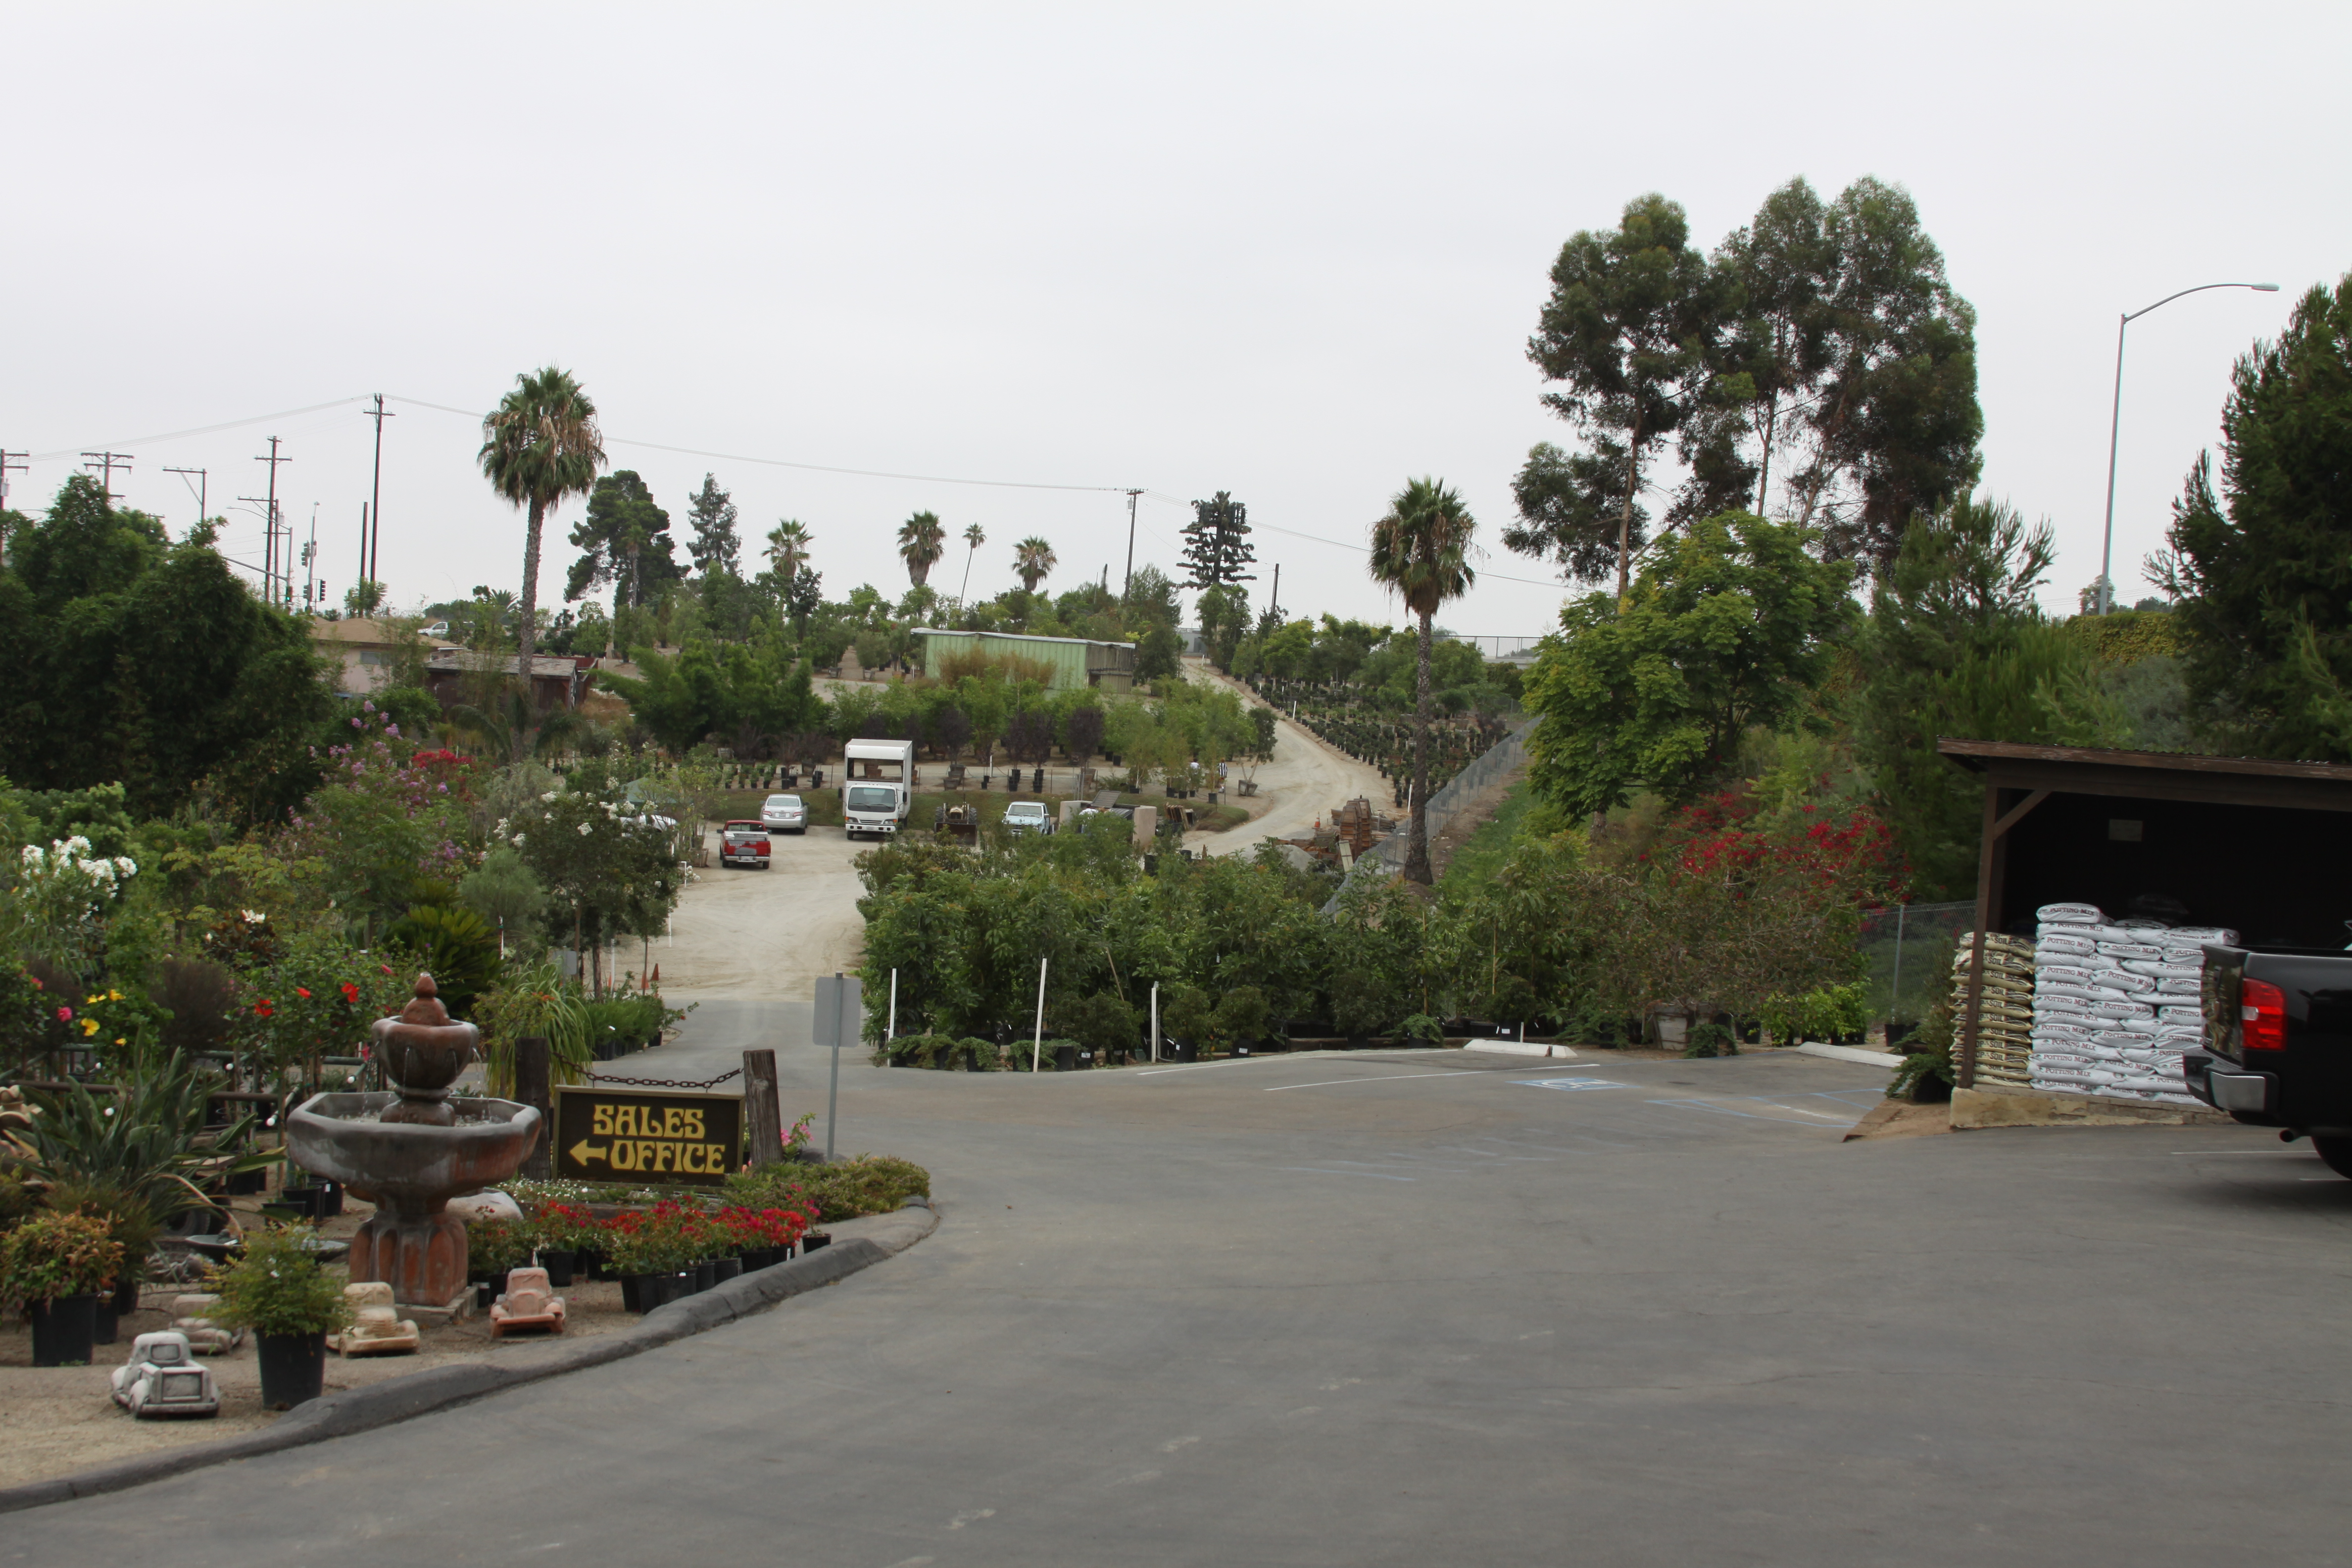 Hunter's Nursery carries fruit trees, citrus trees, avocado trees, and landscape trees for the San Diego climate.